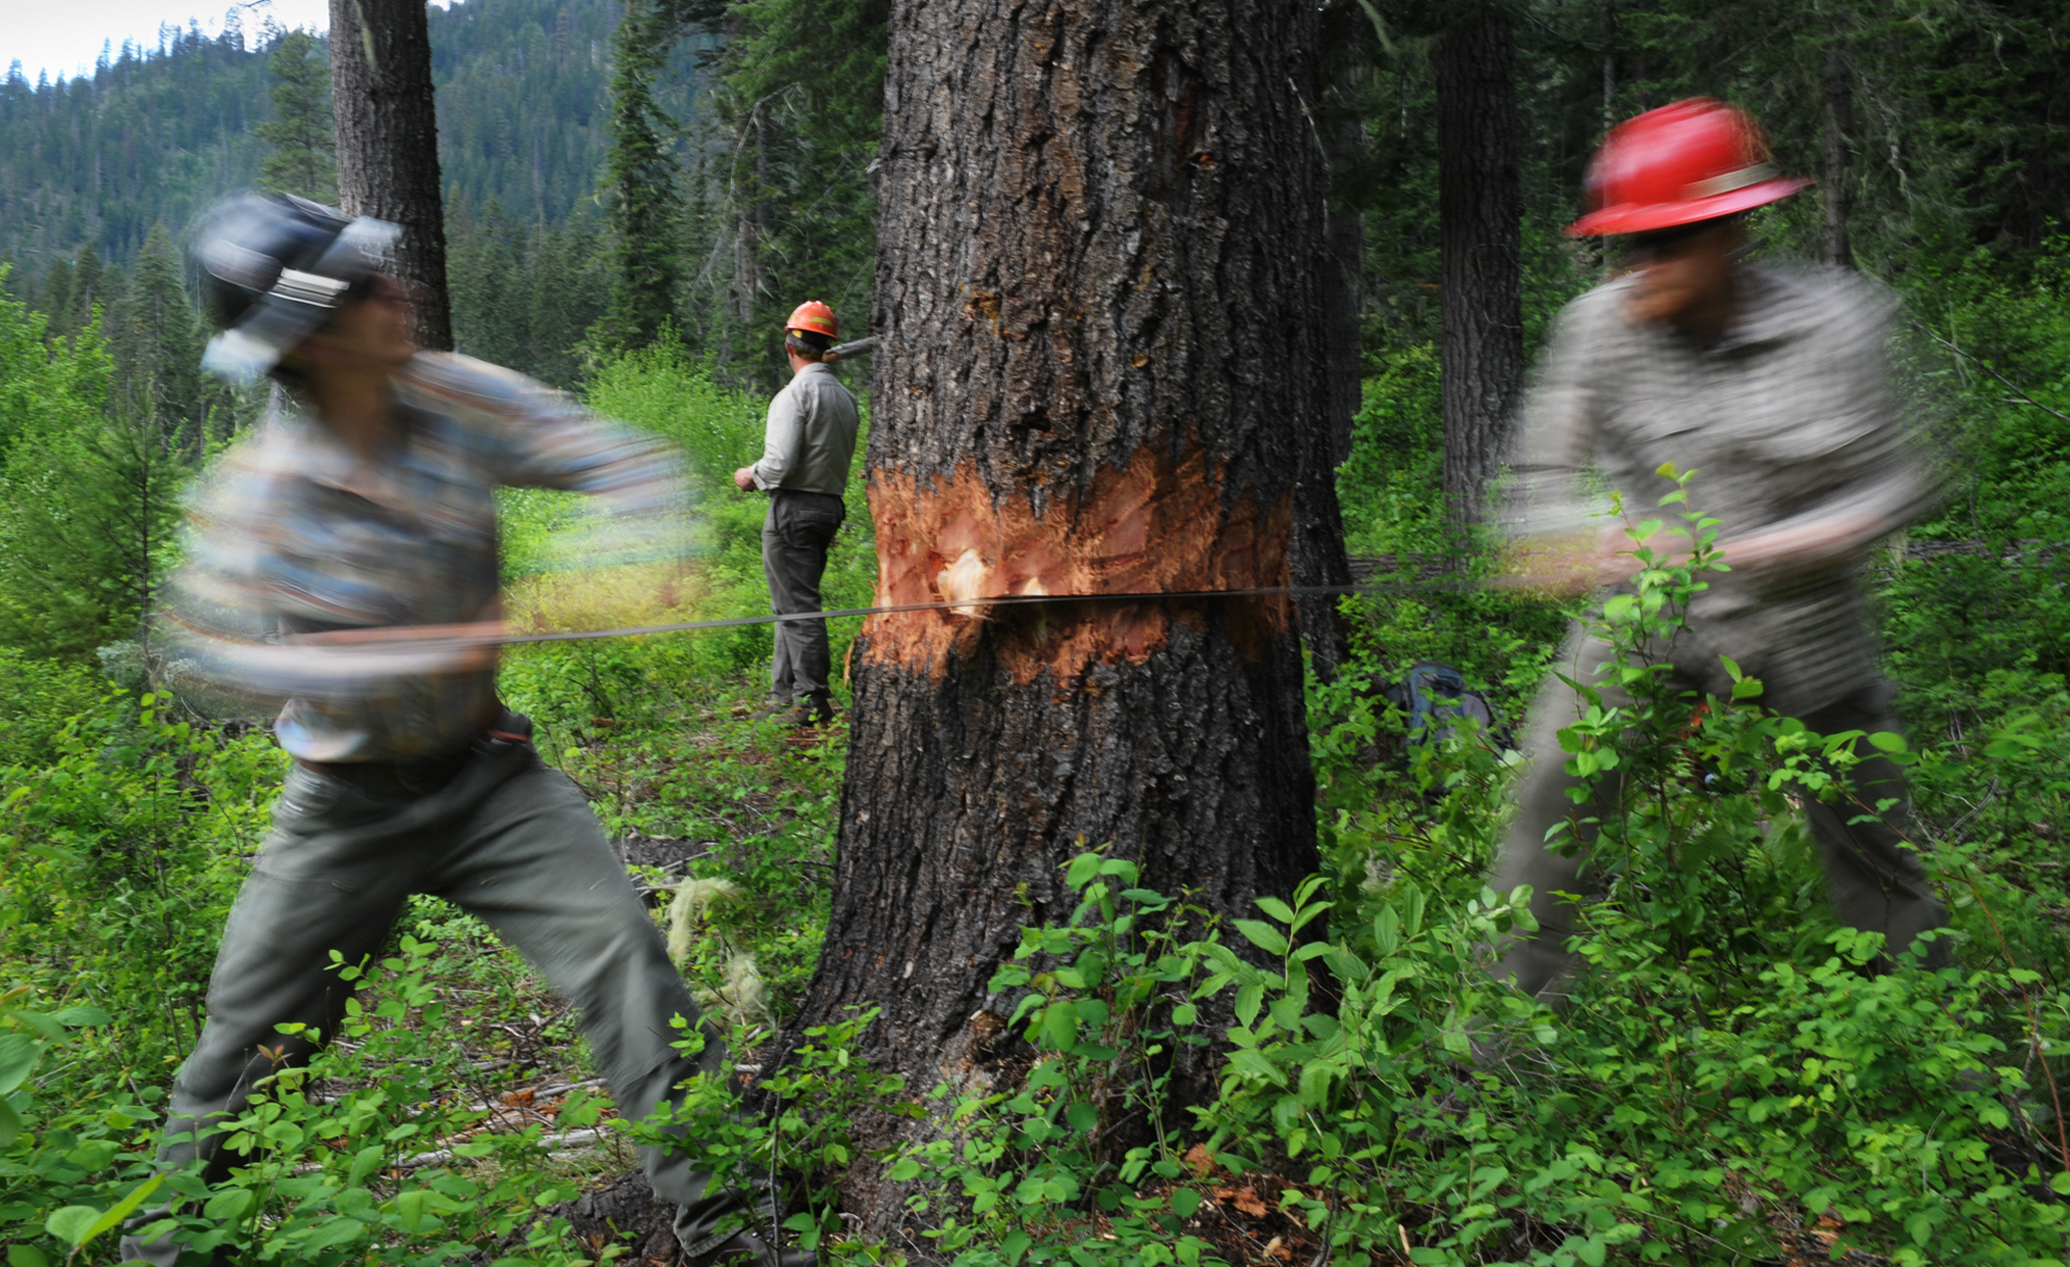 Adam Washebeck, left, and Jeremy Watkins work their way through a fir tree while instructor Tom Wilson, back, discusses crosscut saw instruction.